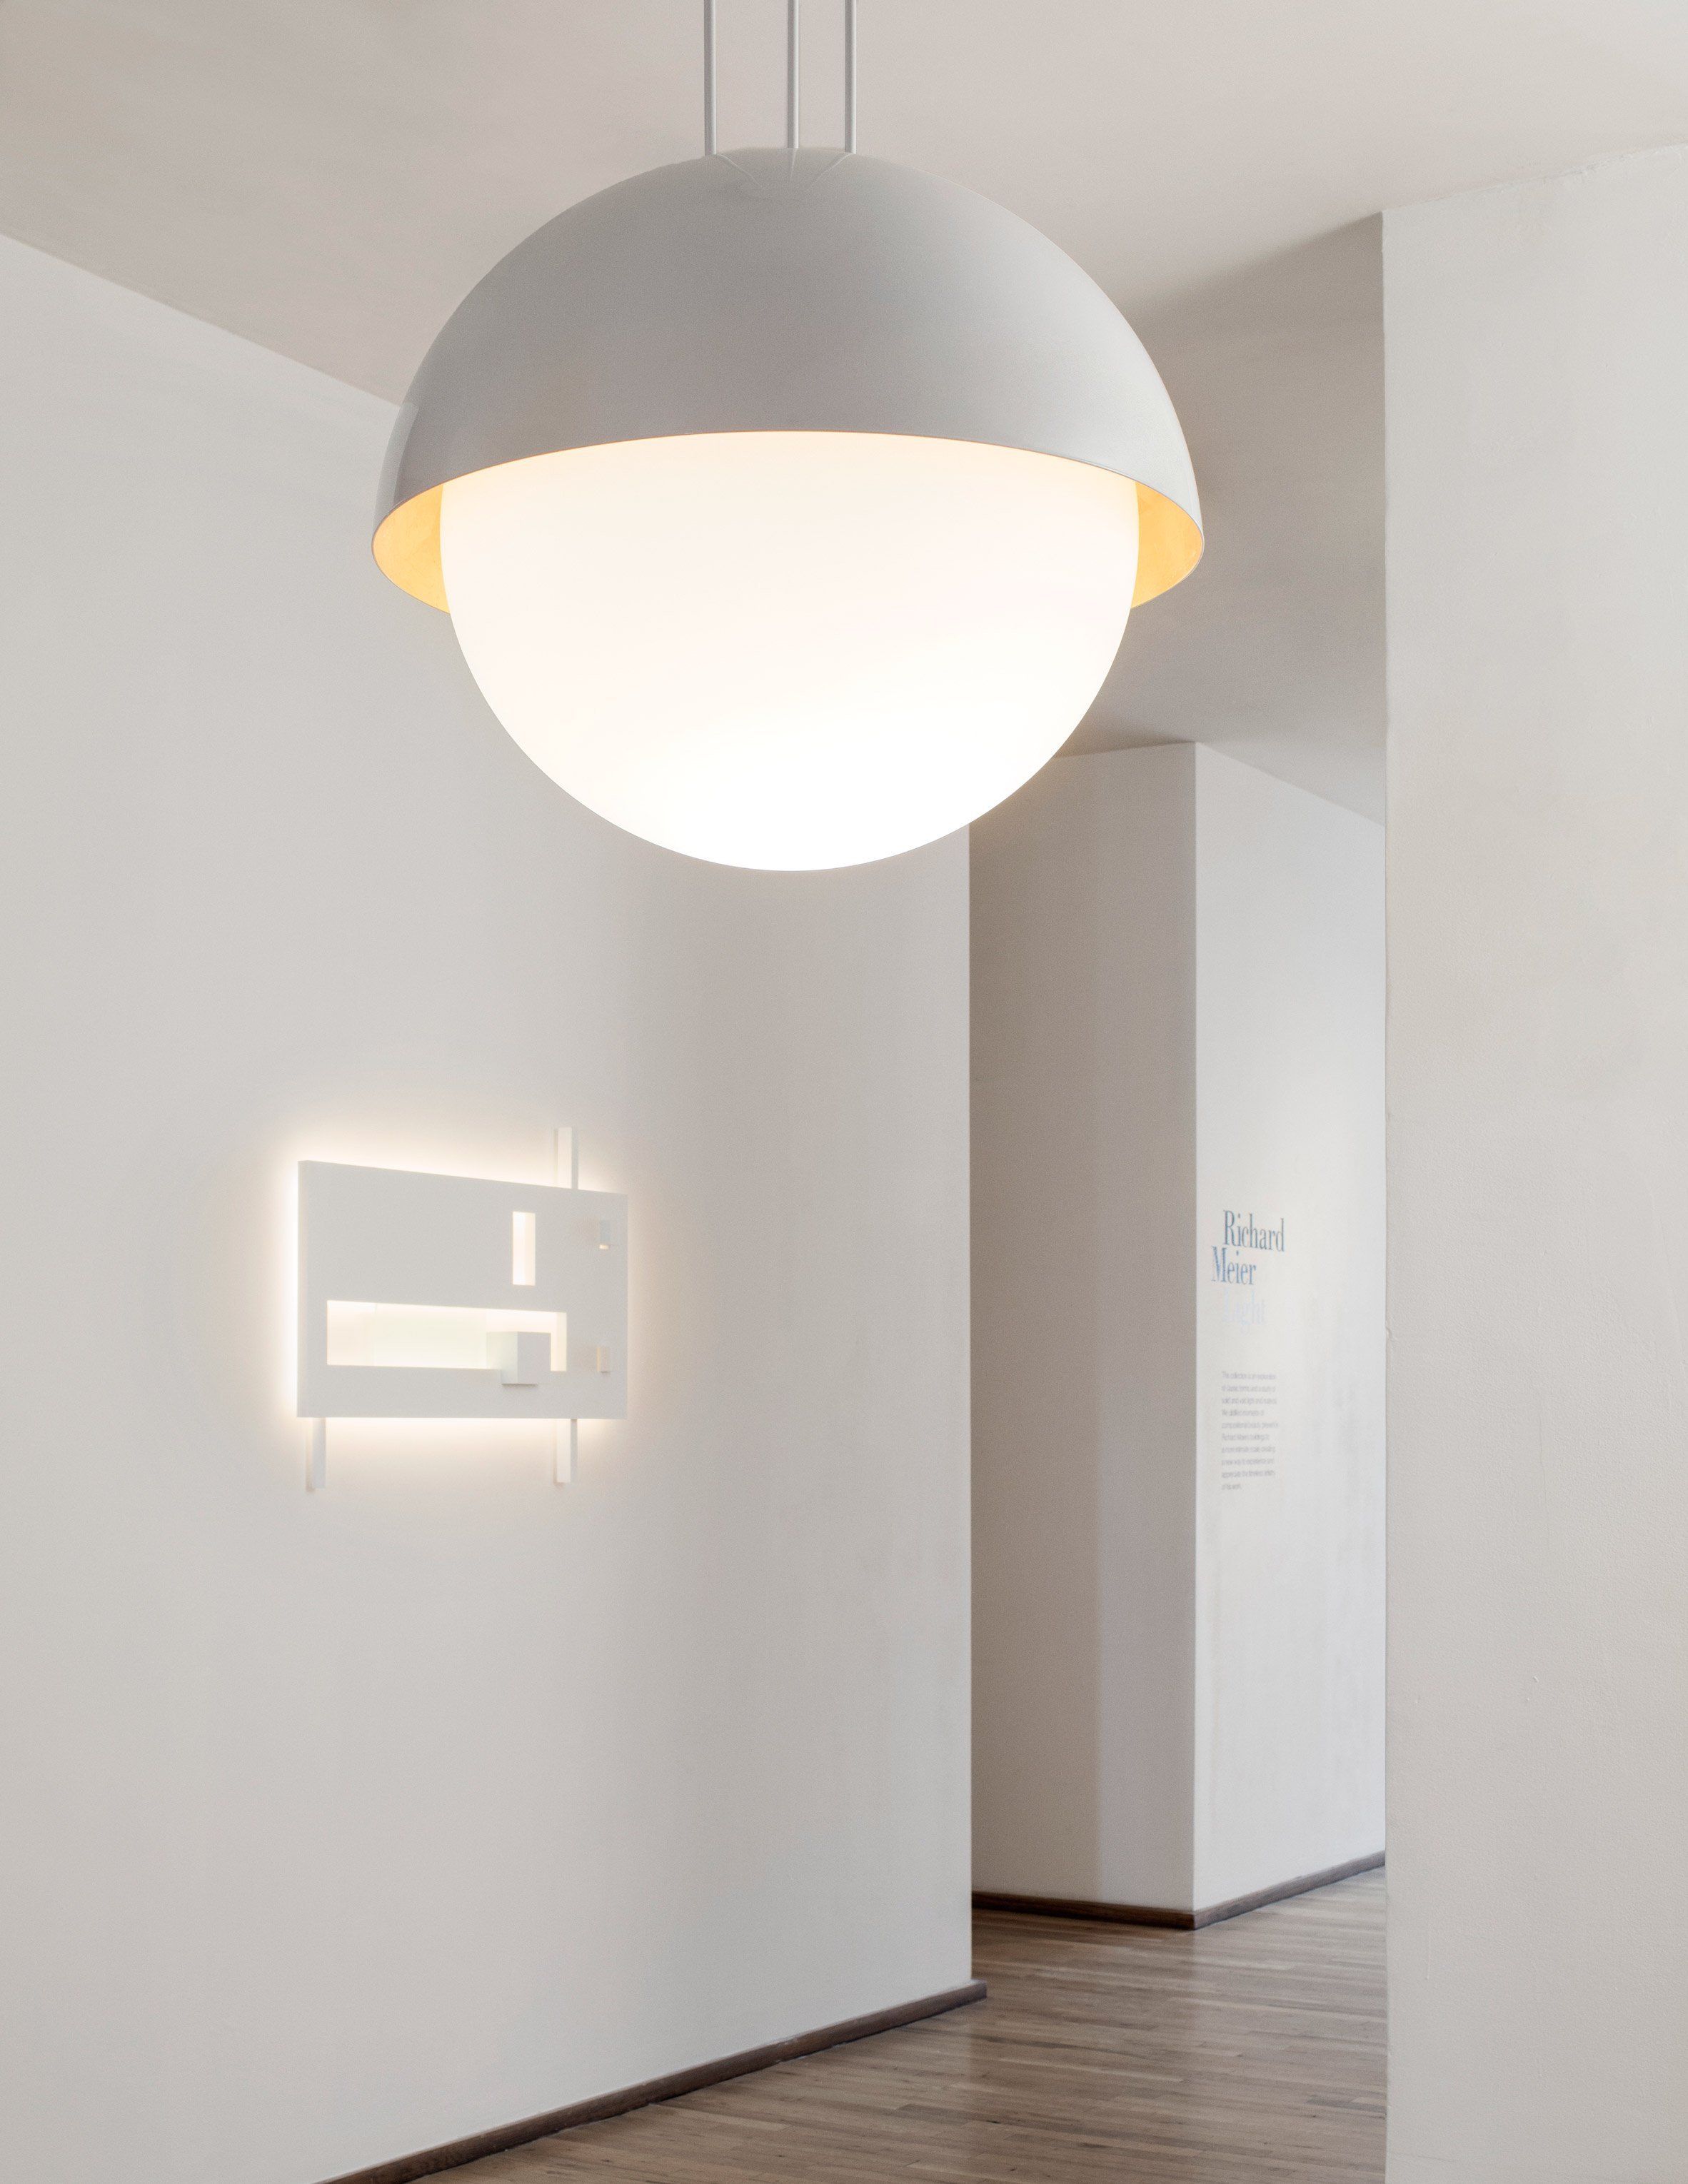 Richard Meier launches minimal lighting collection that resembles his architecture